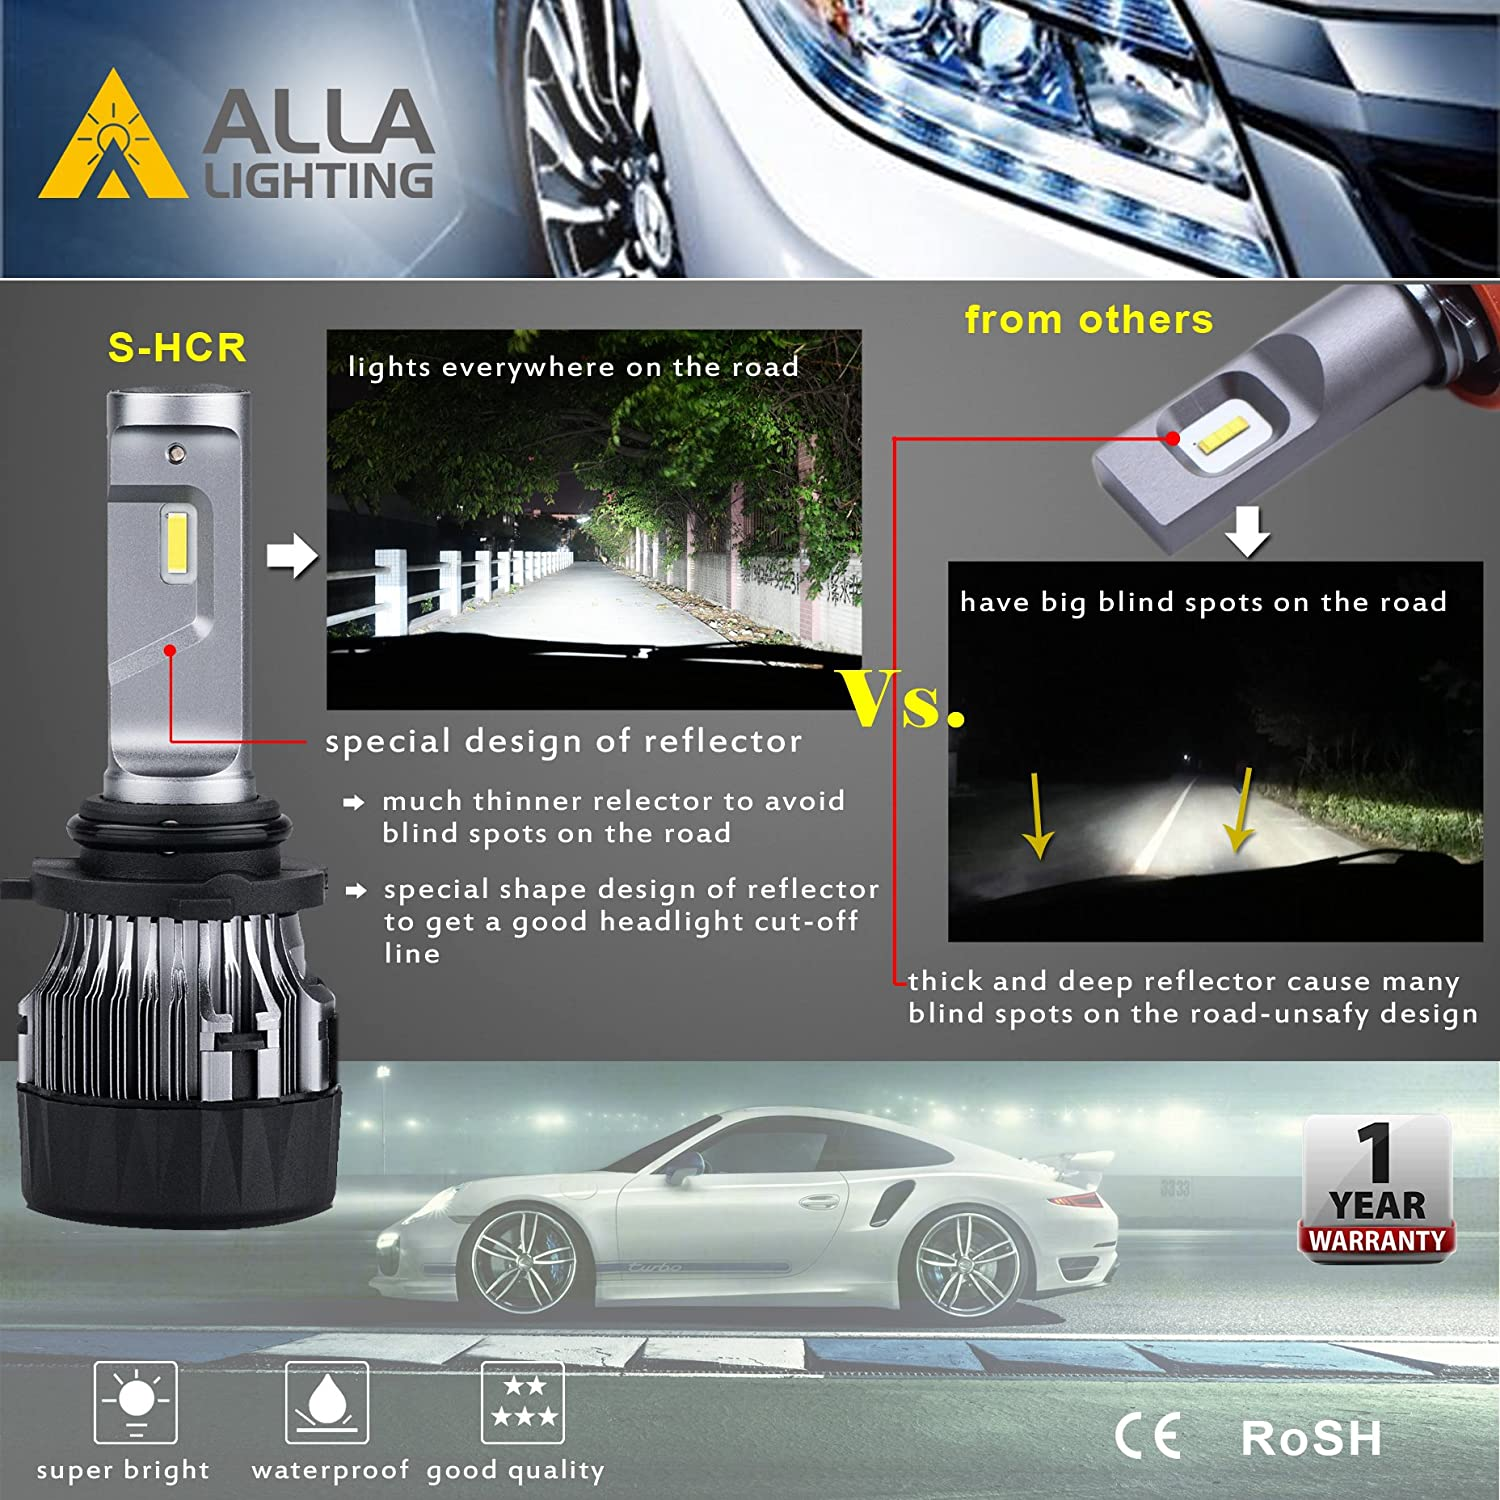 ALLA Lighting S-HCR H11B LED Headlight Bulbs 10000Lms Extreme Super Bright LED H11B Headlight Bulbs Conversion Kits Cool White All-in-One H9B H11B LED Headlamp Replacement